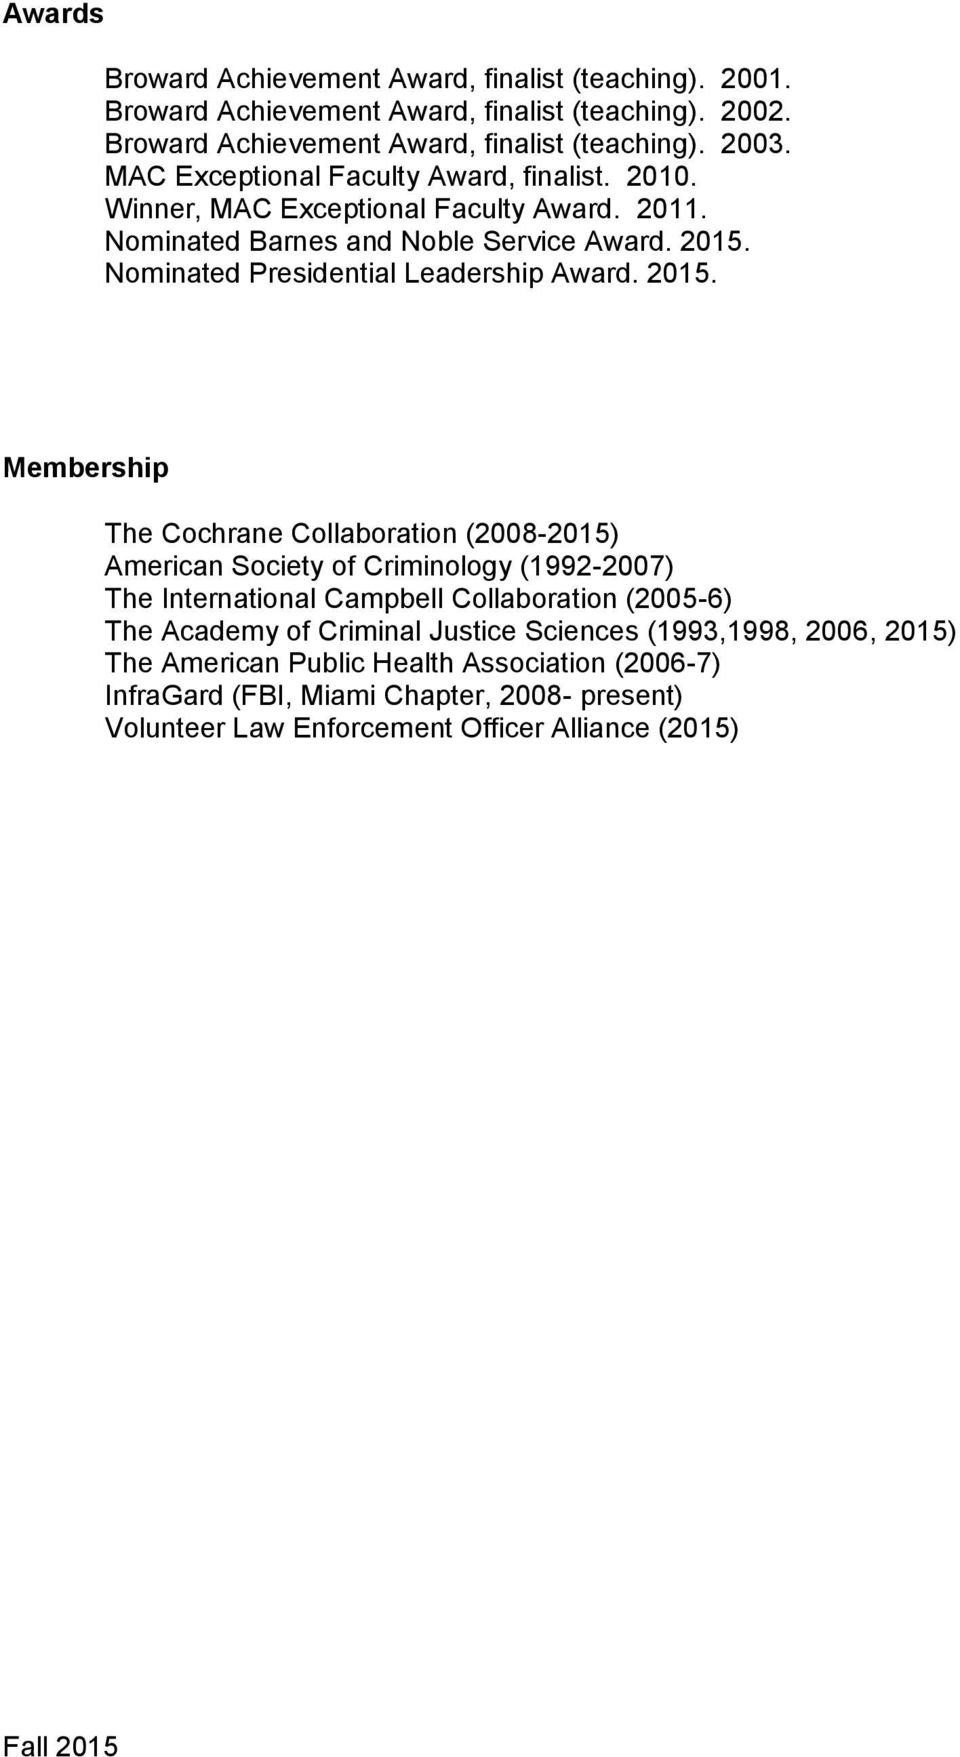 2015. Membership The Cochrane Collaboration (2008-2015) American Society of Criminology (1992-2007) The International Campbell Collaboration (2005-6) The Academy of Criminal